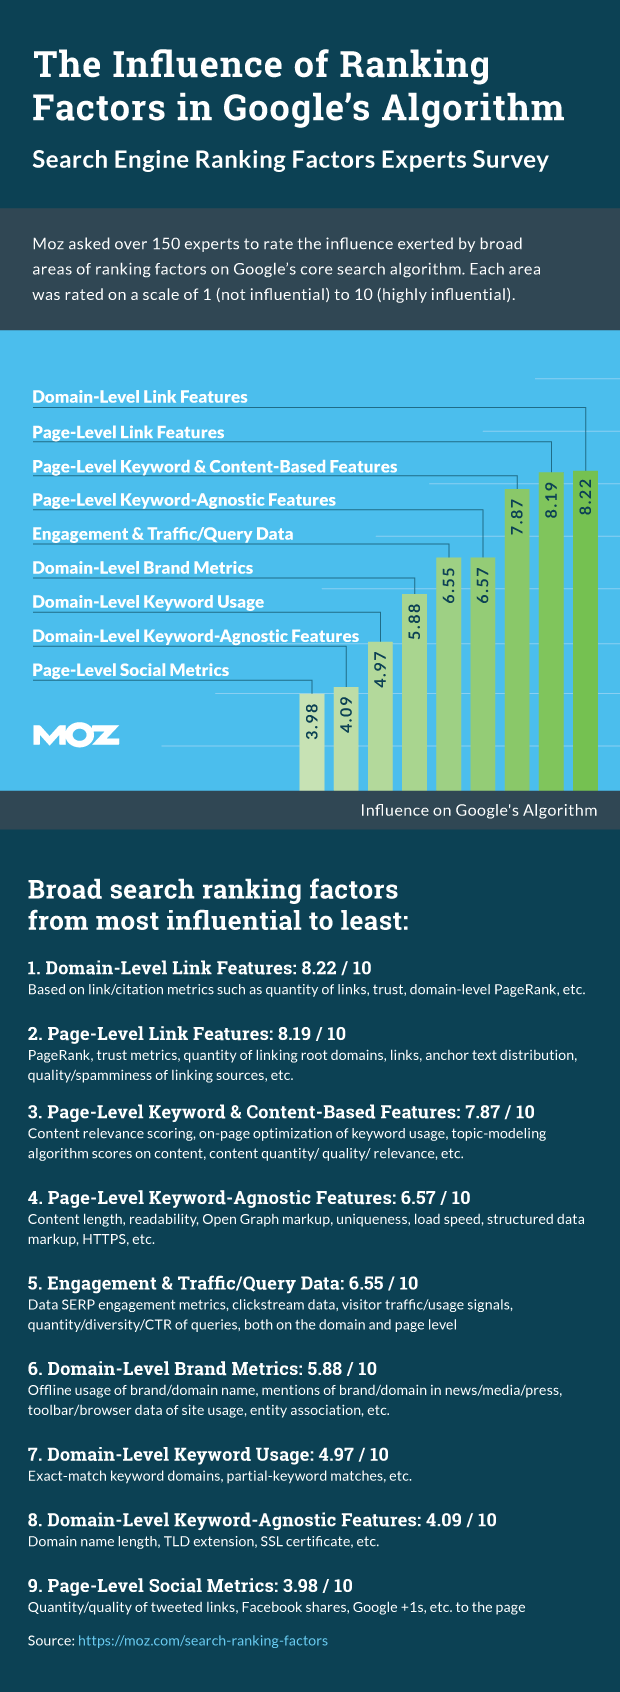 Moz SEO ranking factors 2015